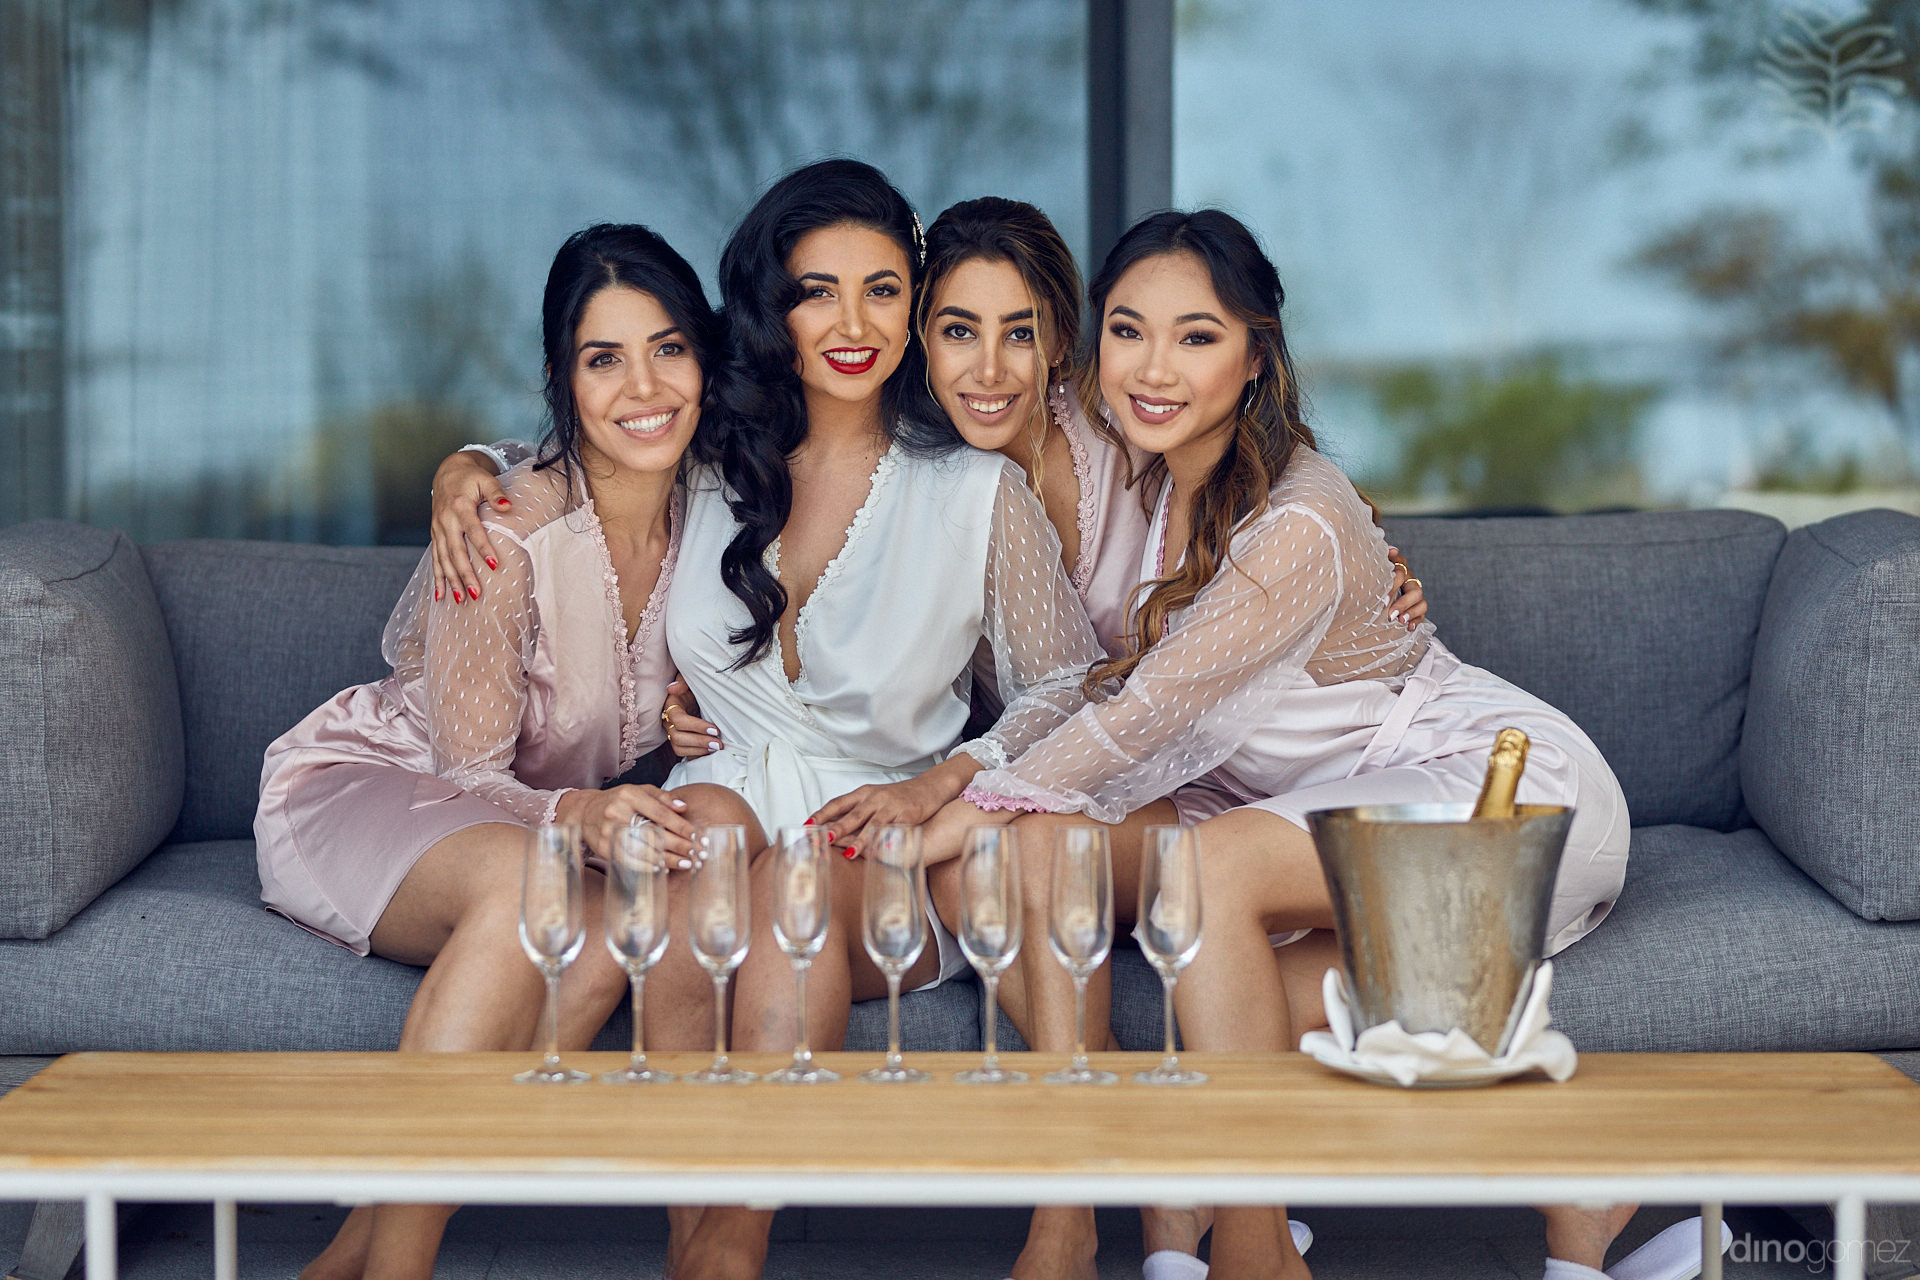 Persian Wedding Bridesmaids Ready To Toast With Champagne